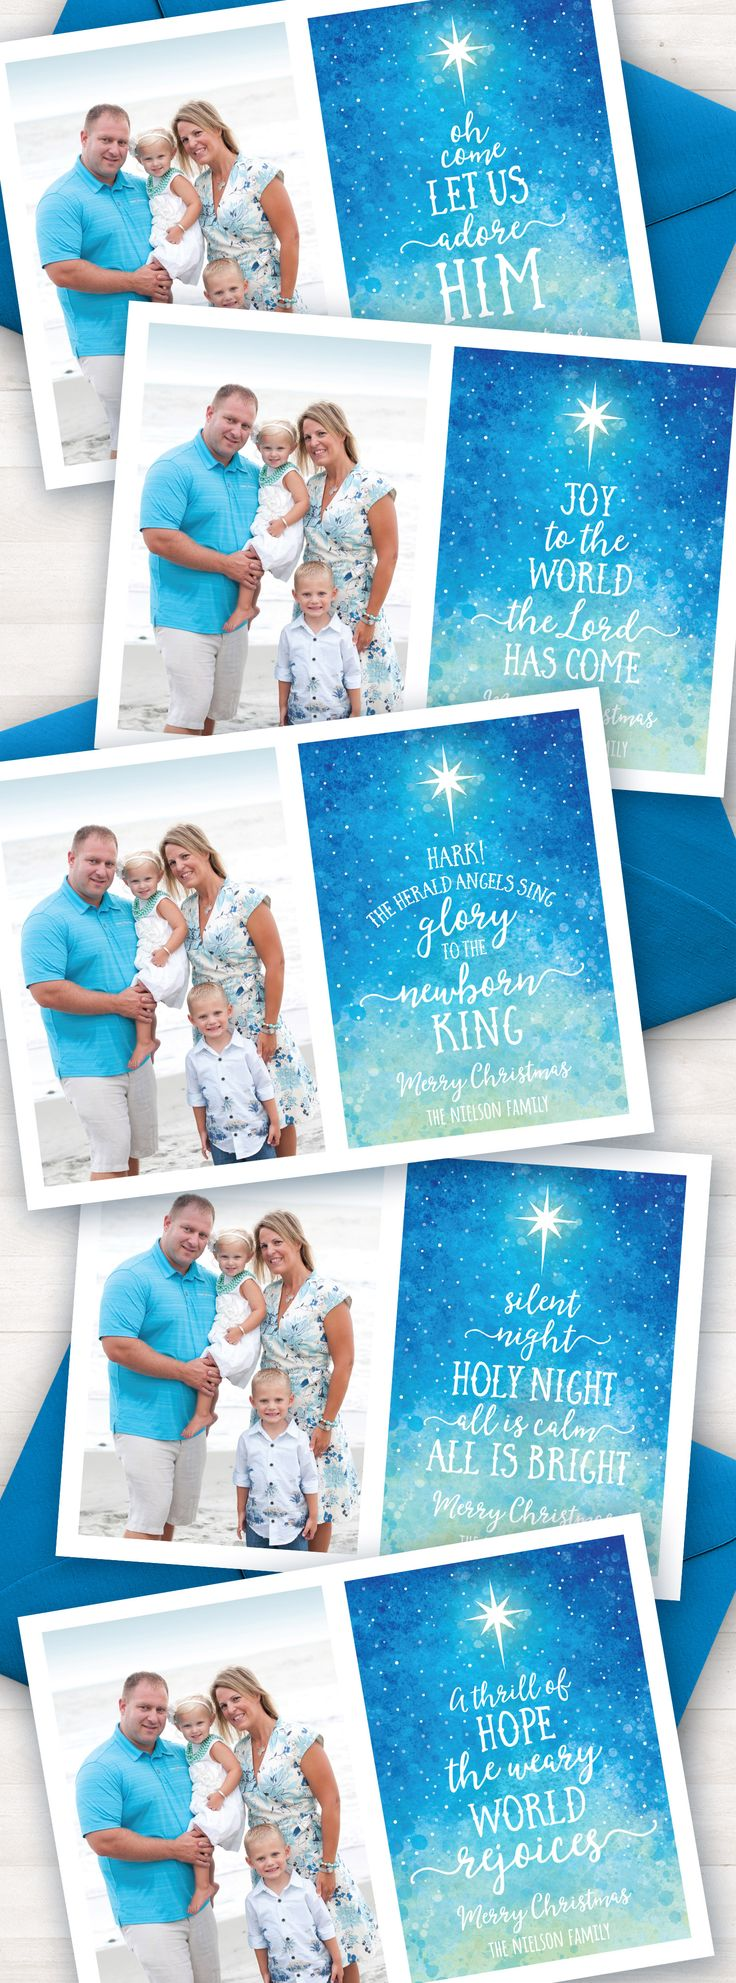 Religious Christmas Cards, Printable Photo Christmas Cards, Joy to the World, Hark the herald angels sing glory to the newborn king, Religious Christmas Cards, Scripture Cards, Xmas Cards, Christian Christmas card, Christian Photo Christmas card, modern Christmas card, silent night card, holy night, Christmas Song, Scripture Card